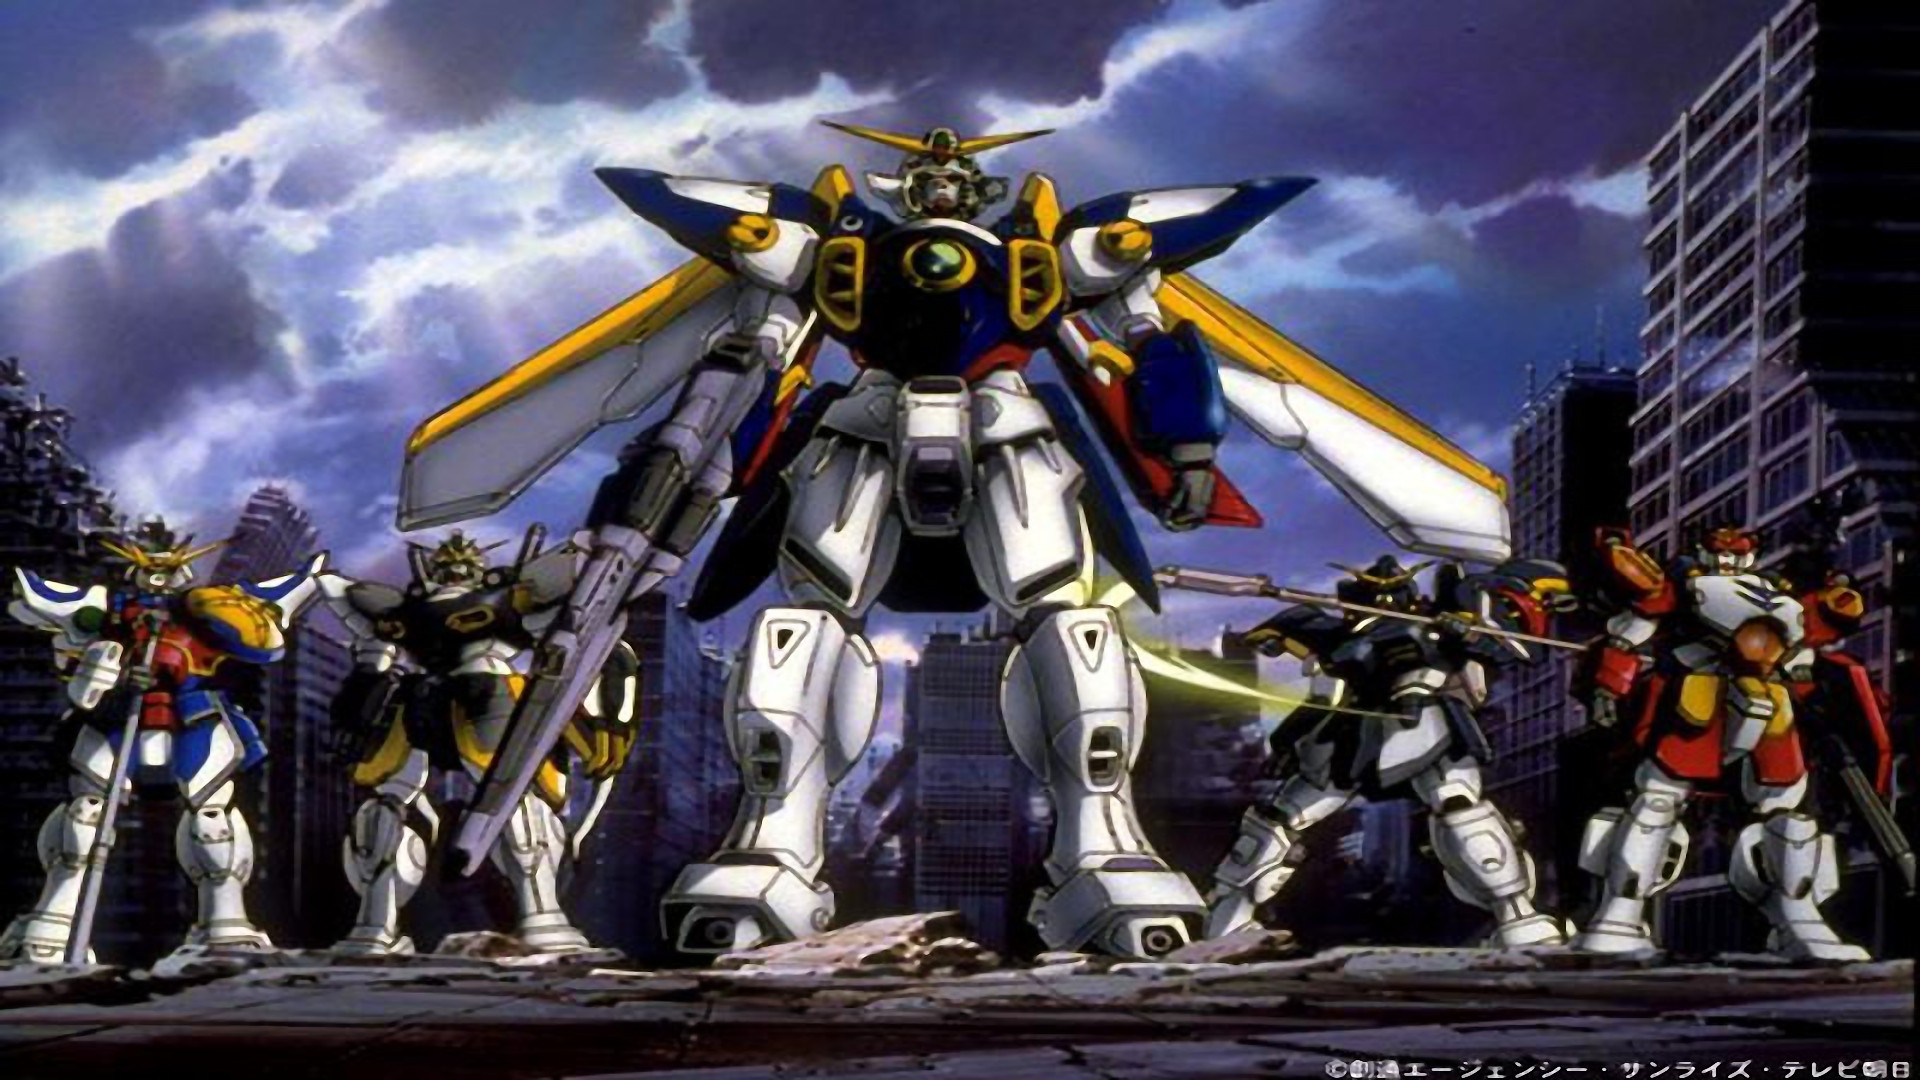 Gundam Wing Wallpaper Download Free Cool Wallpapers For